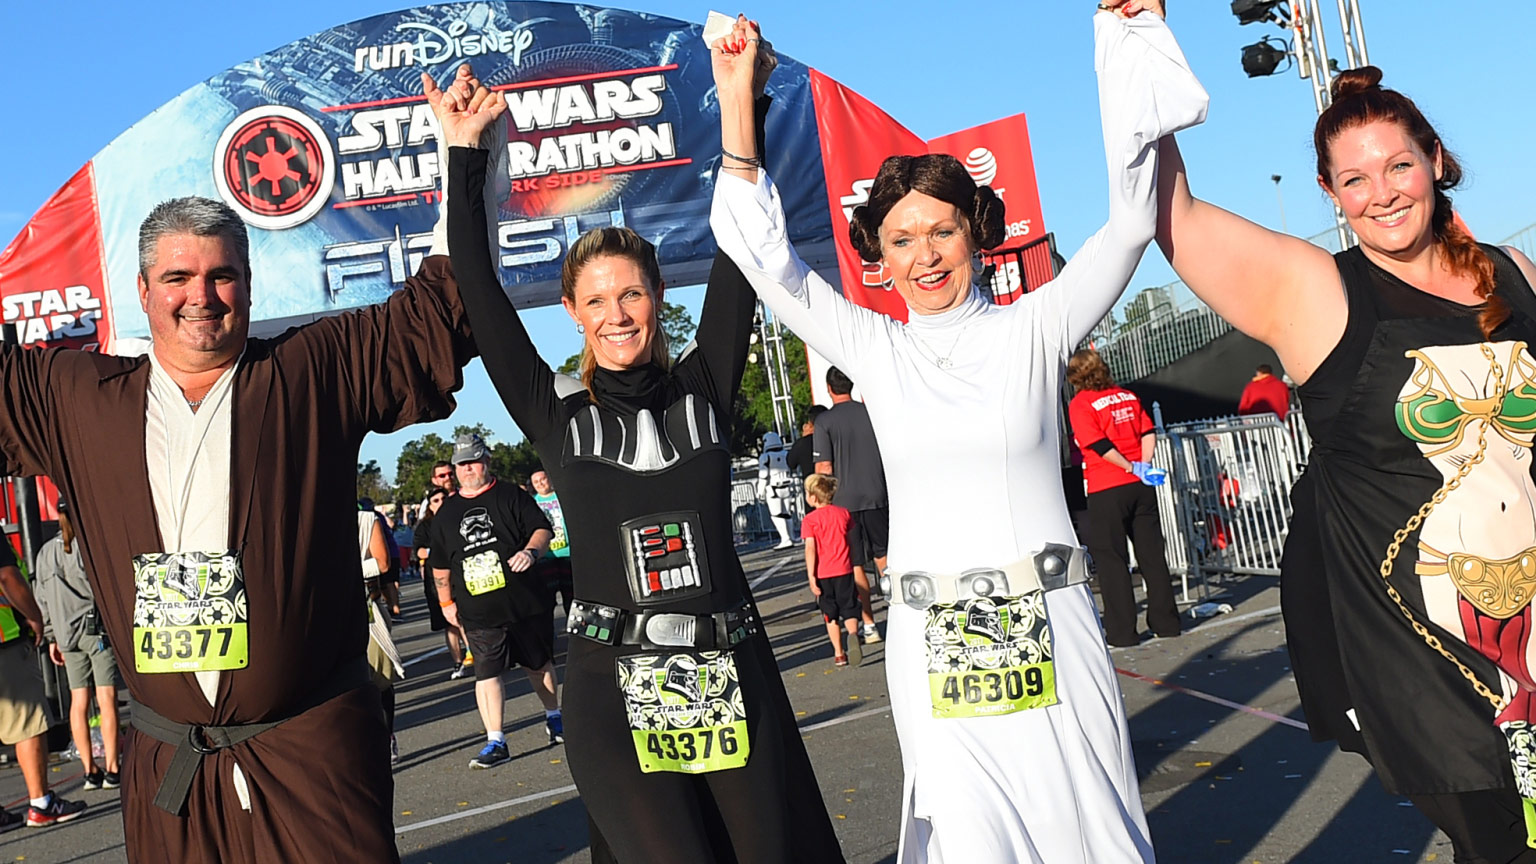 running with the force thanks to rundisney